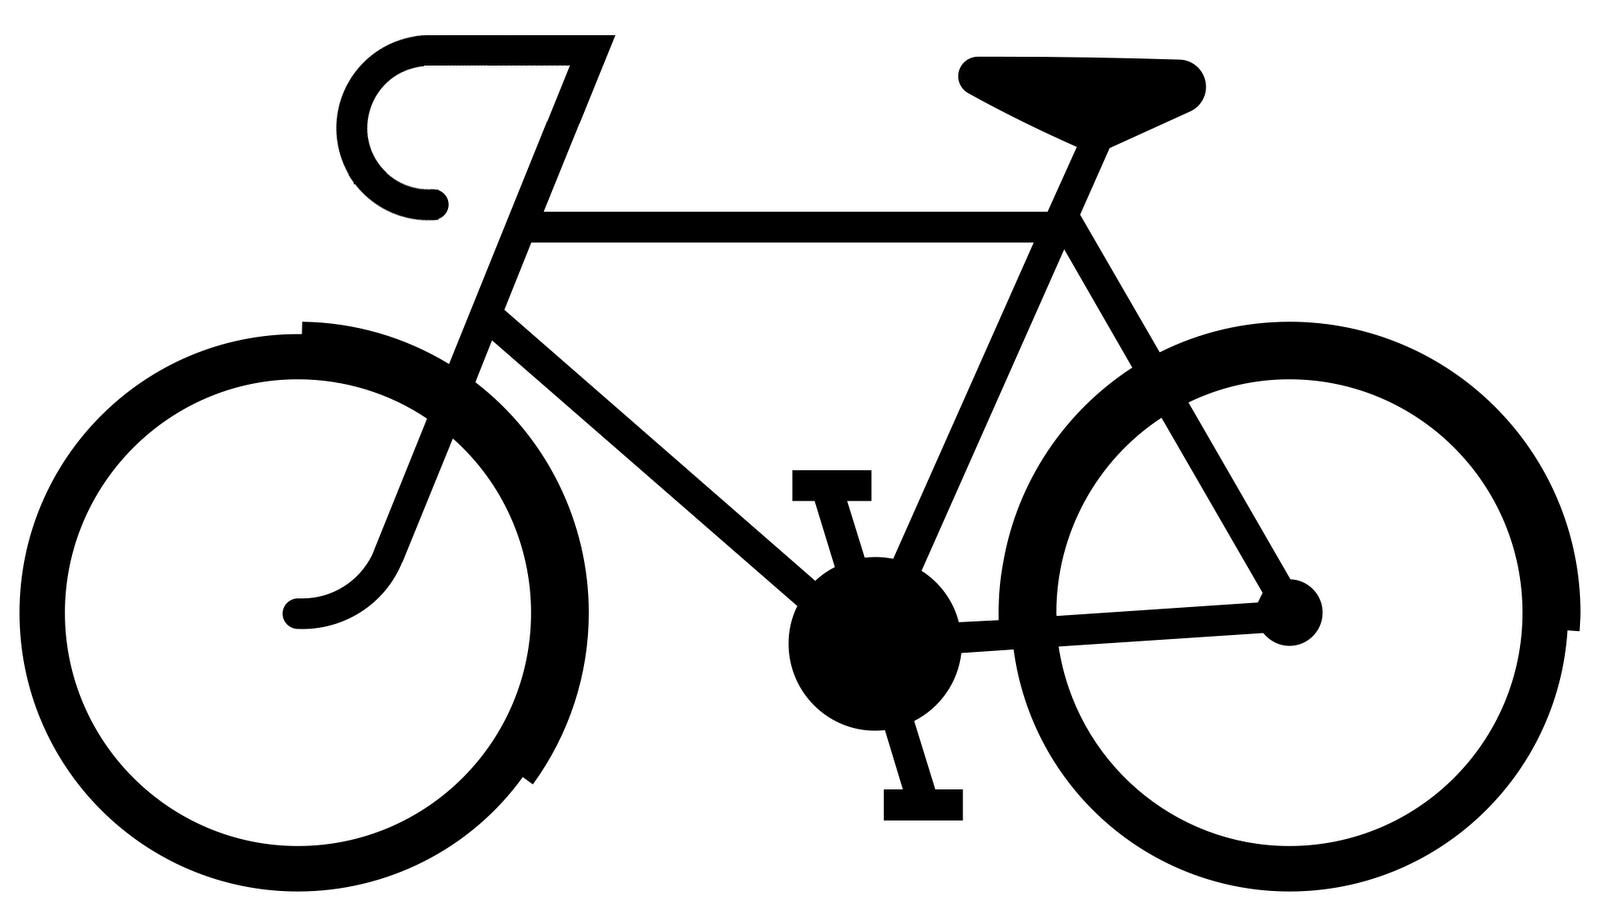 Design Technology Education Interdependent Achievement